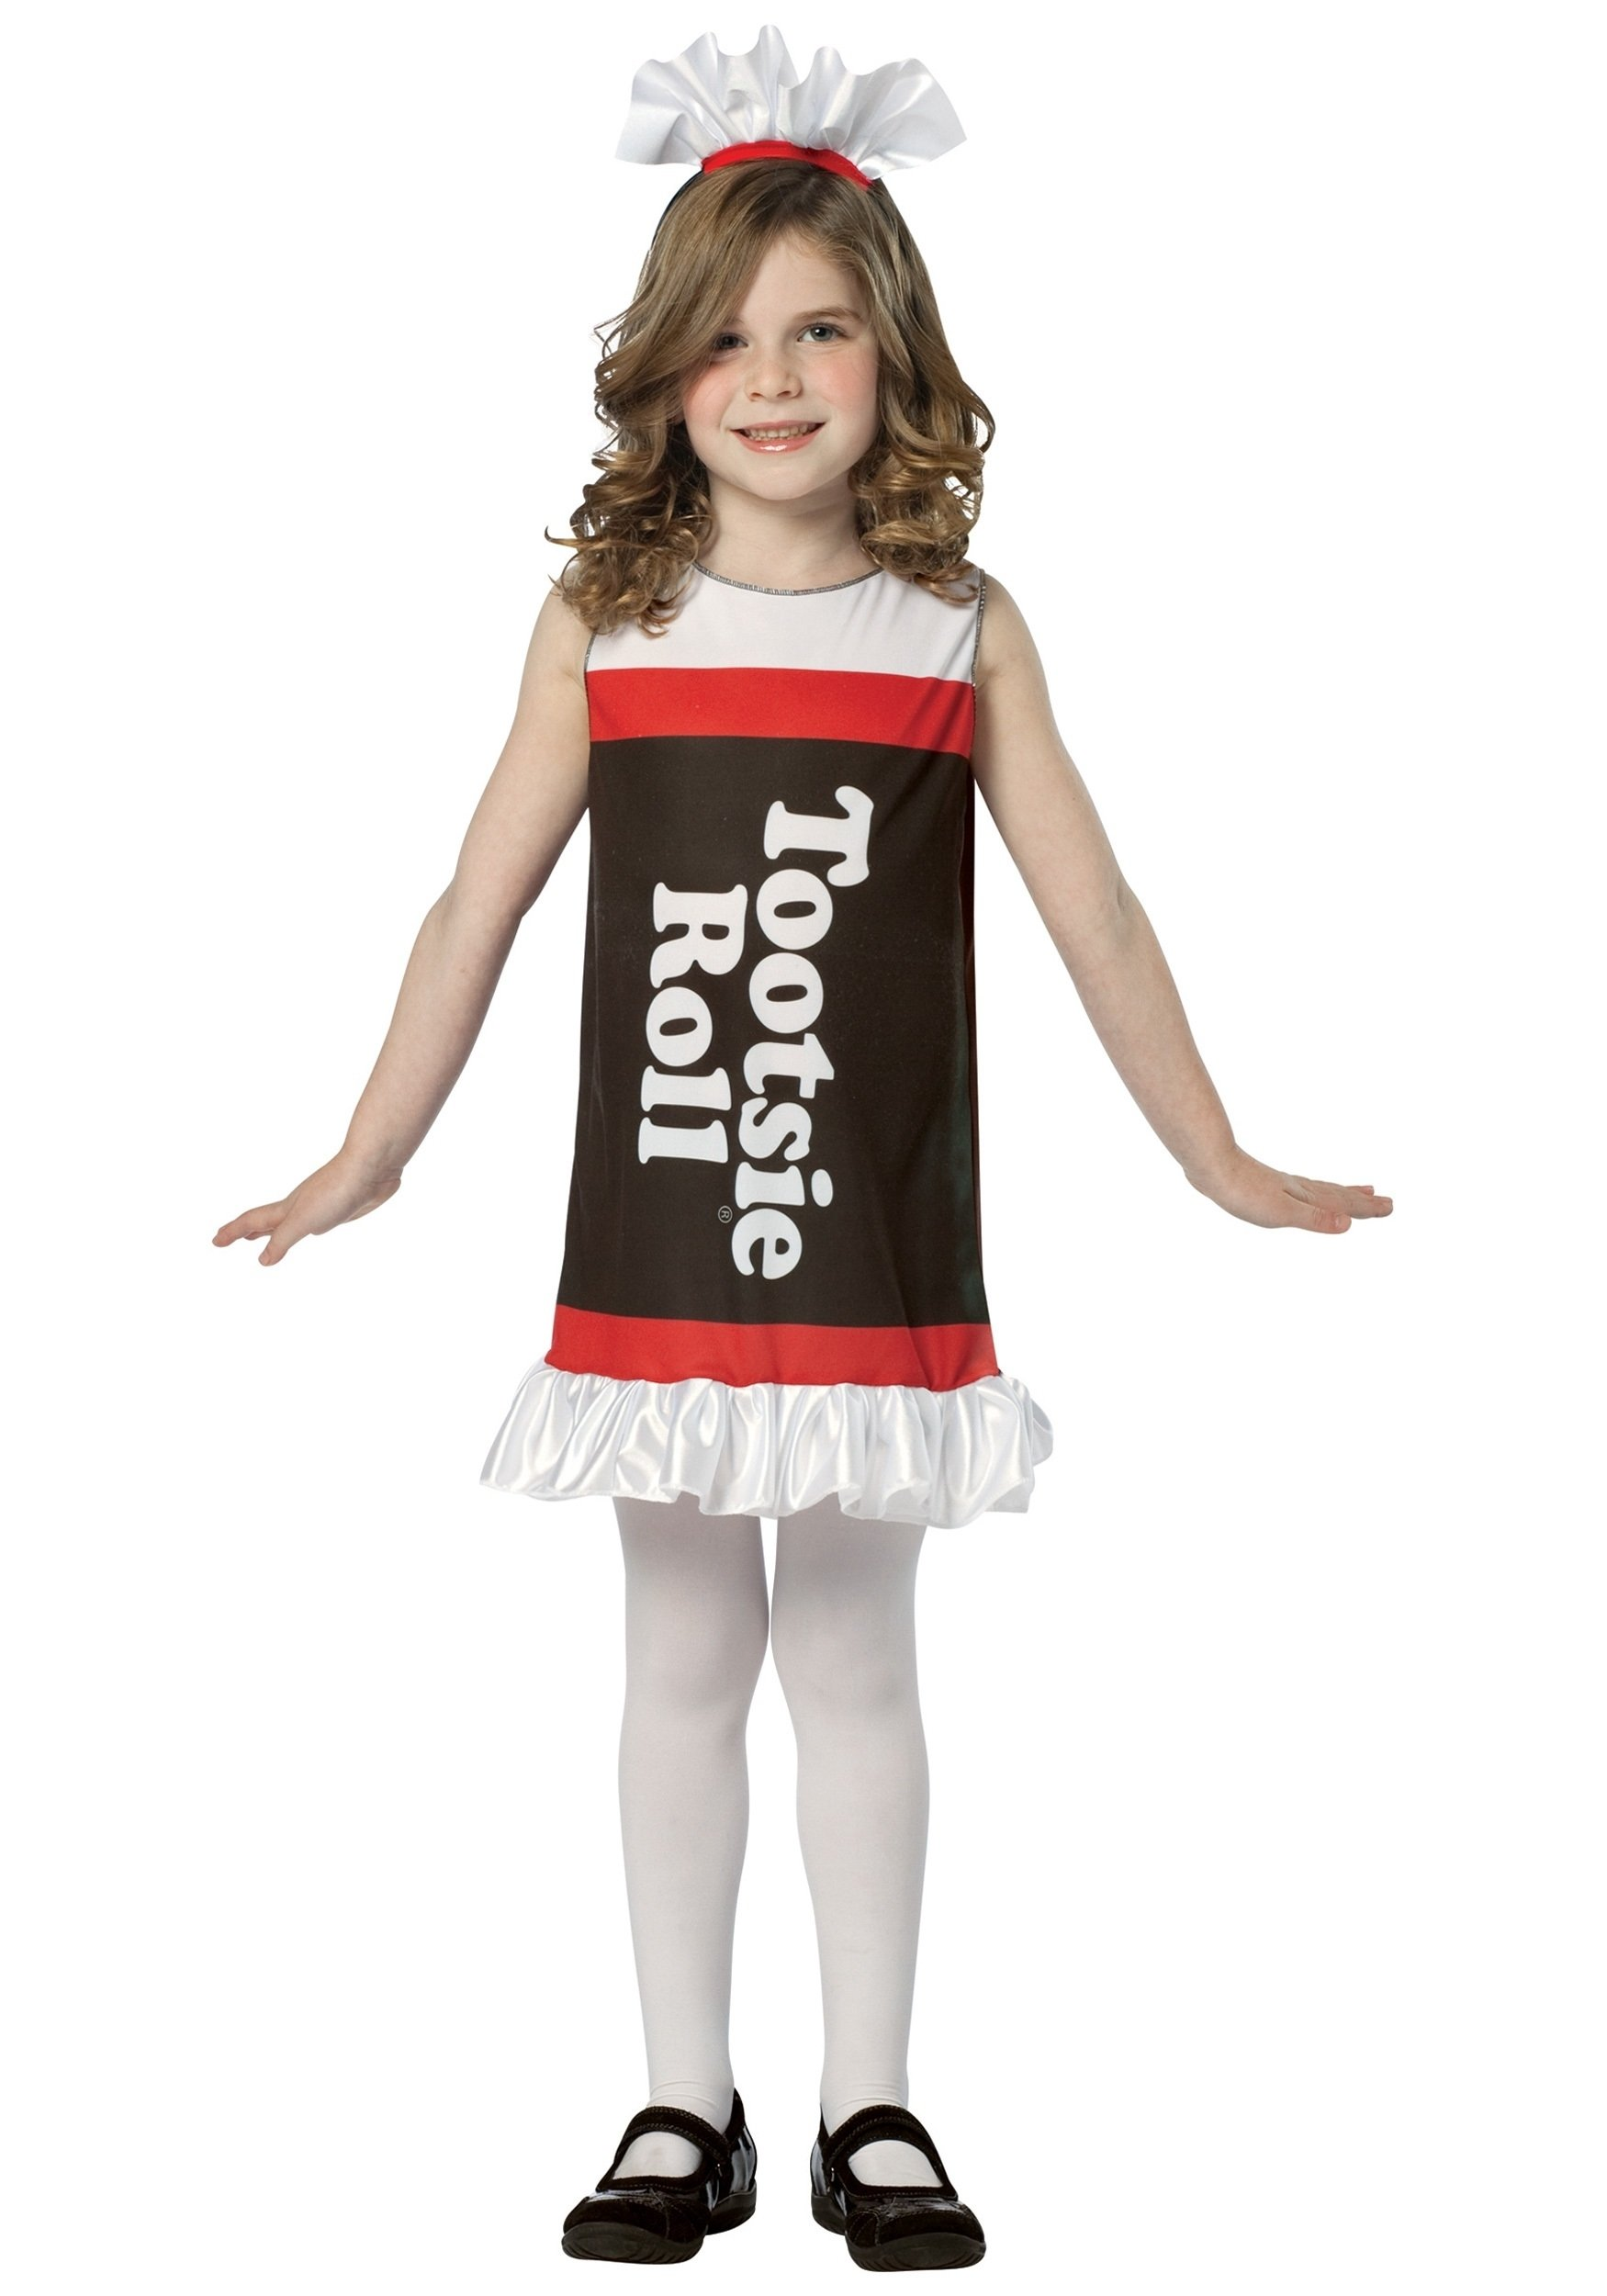 10 Gorgeous Funny Girl Halloween Costume Ideas girls candy tootsie roll dress funny food child costumes 2021